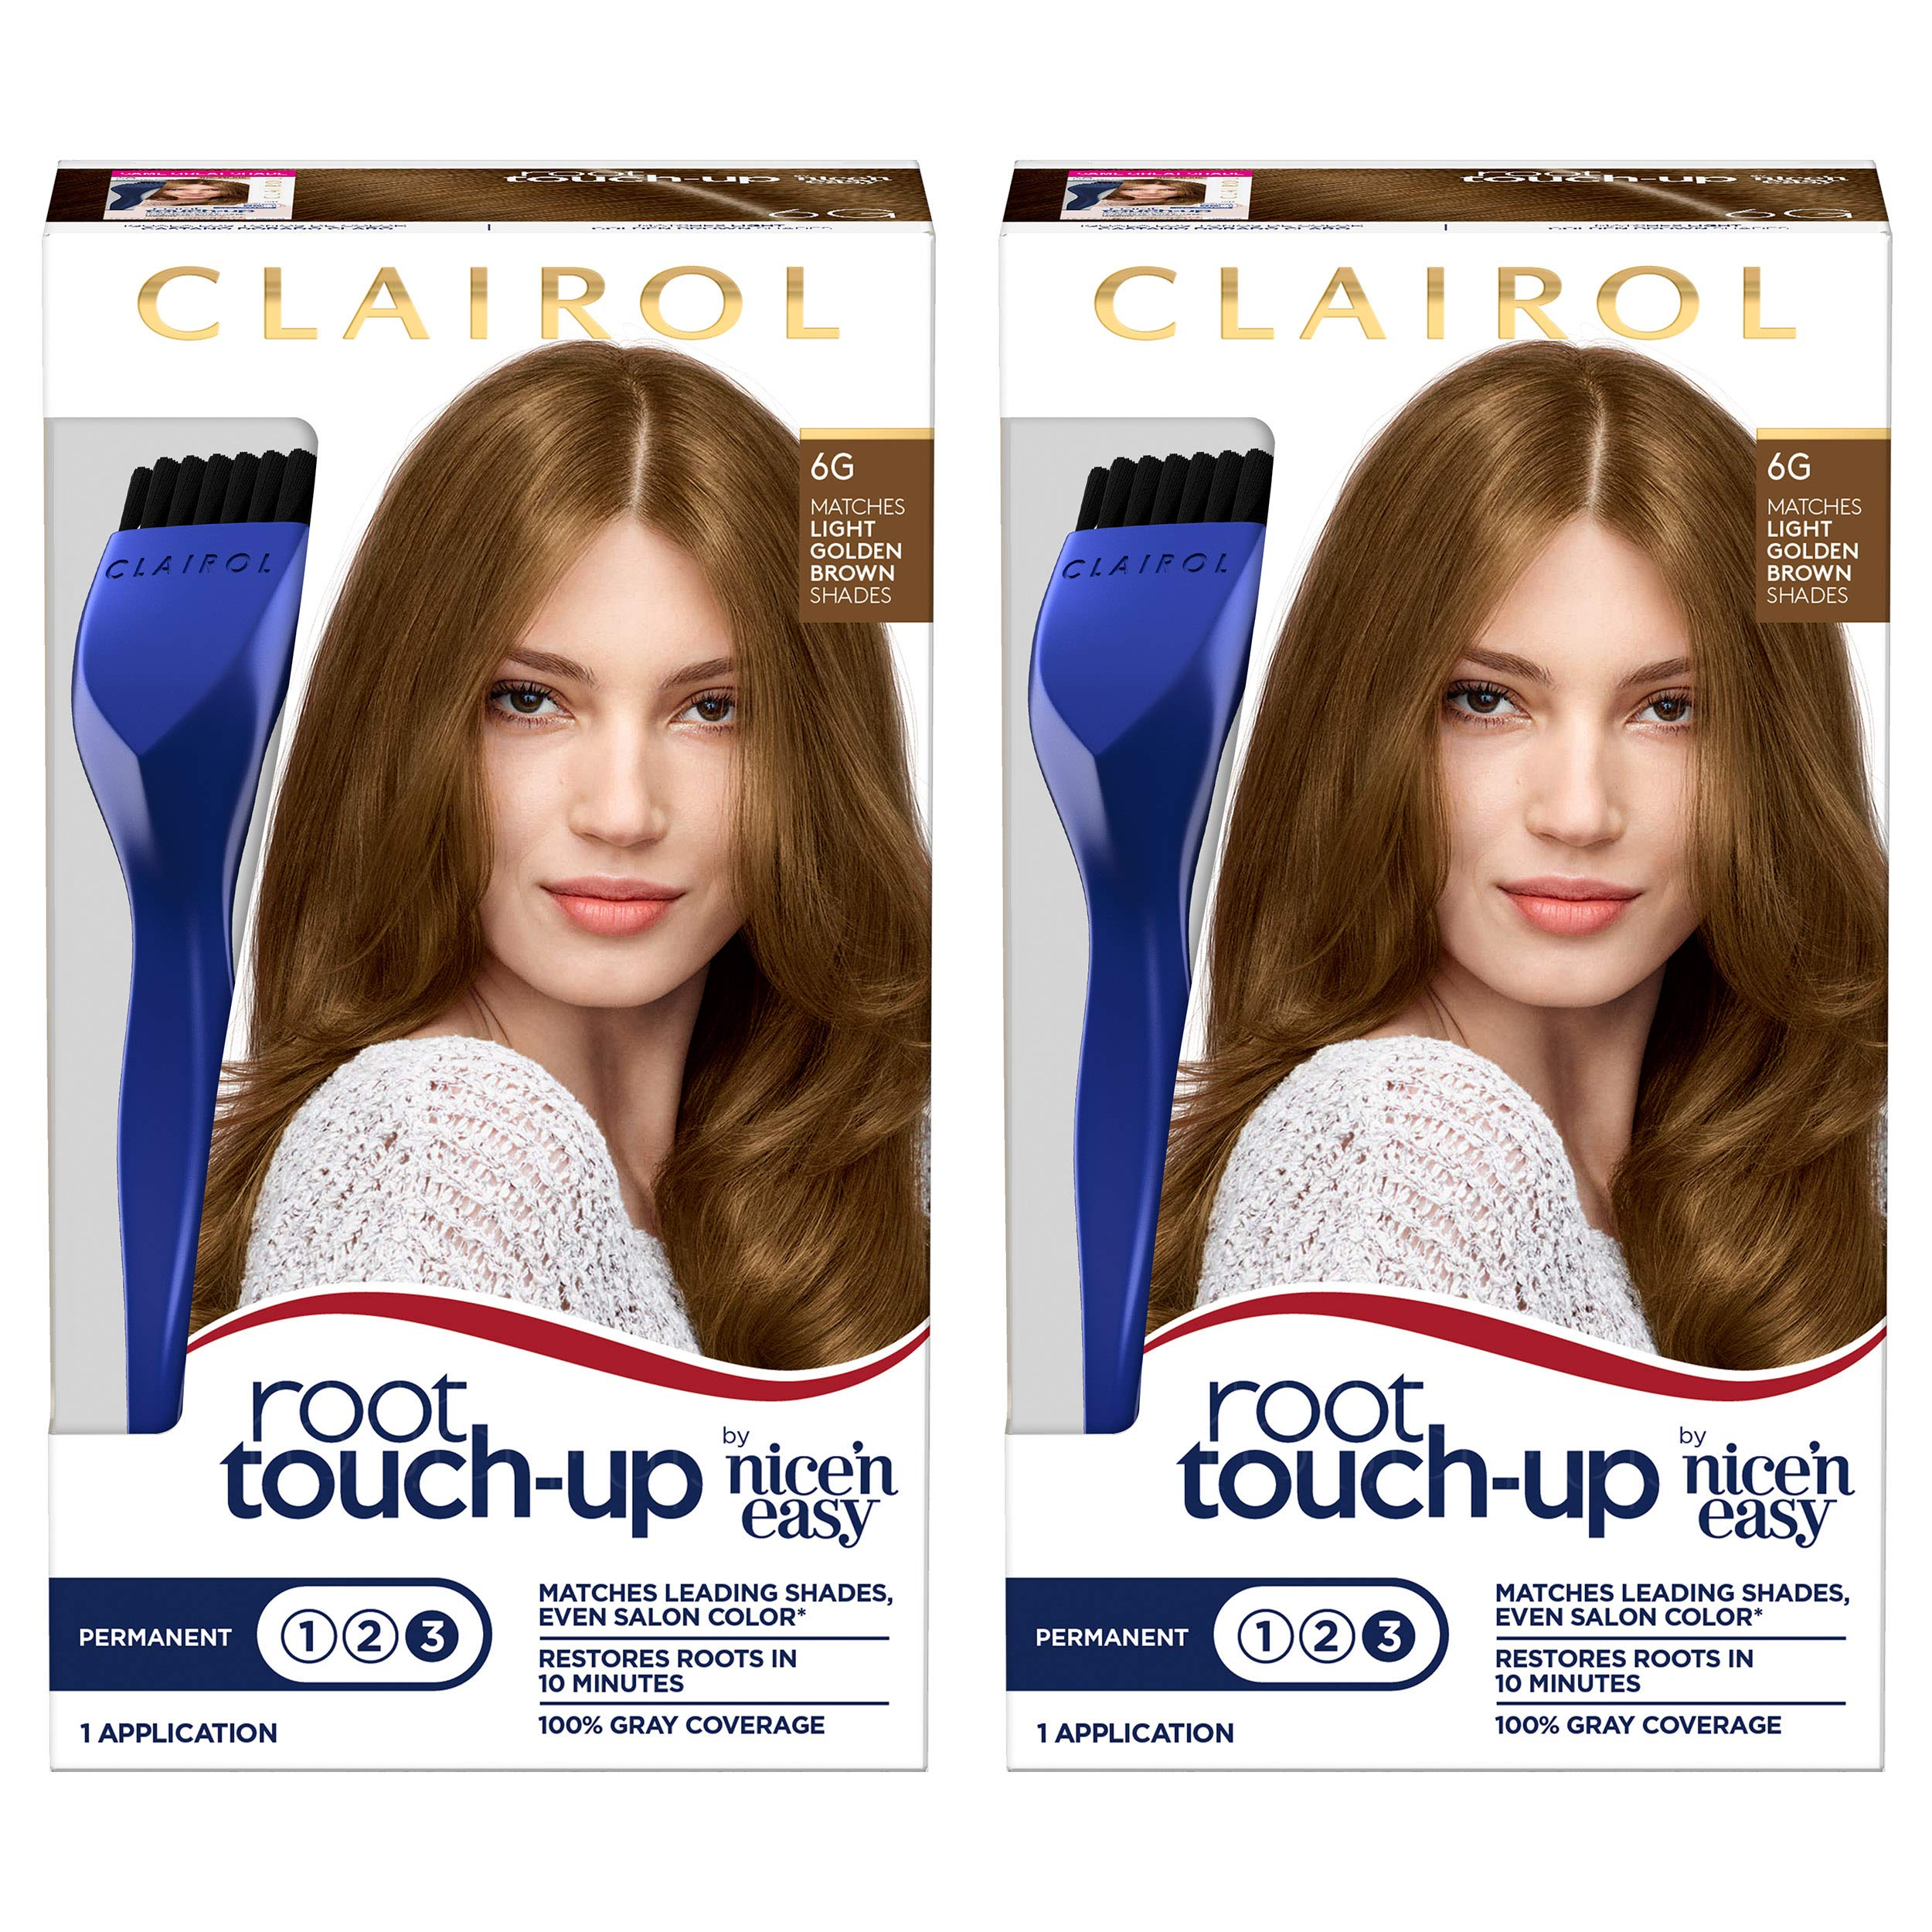 Clairol Root Touch-Up Permanent Hair Color Creme, 6G Light Golden Brown, 2 Count